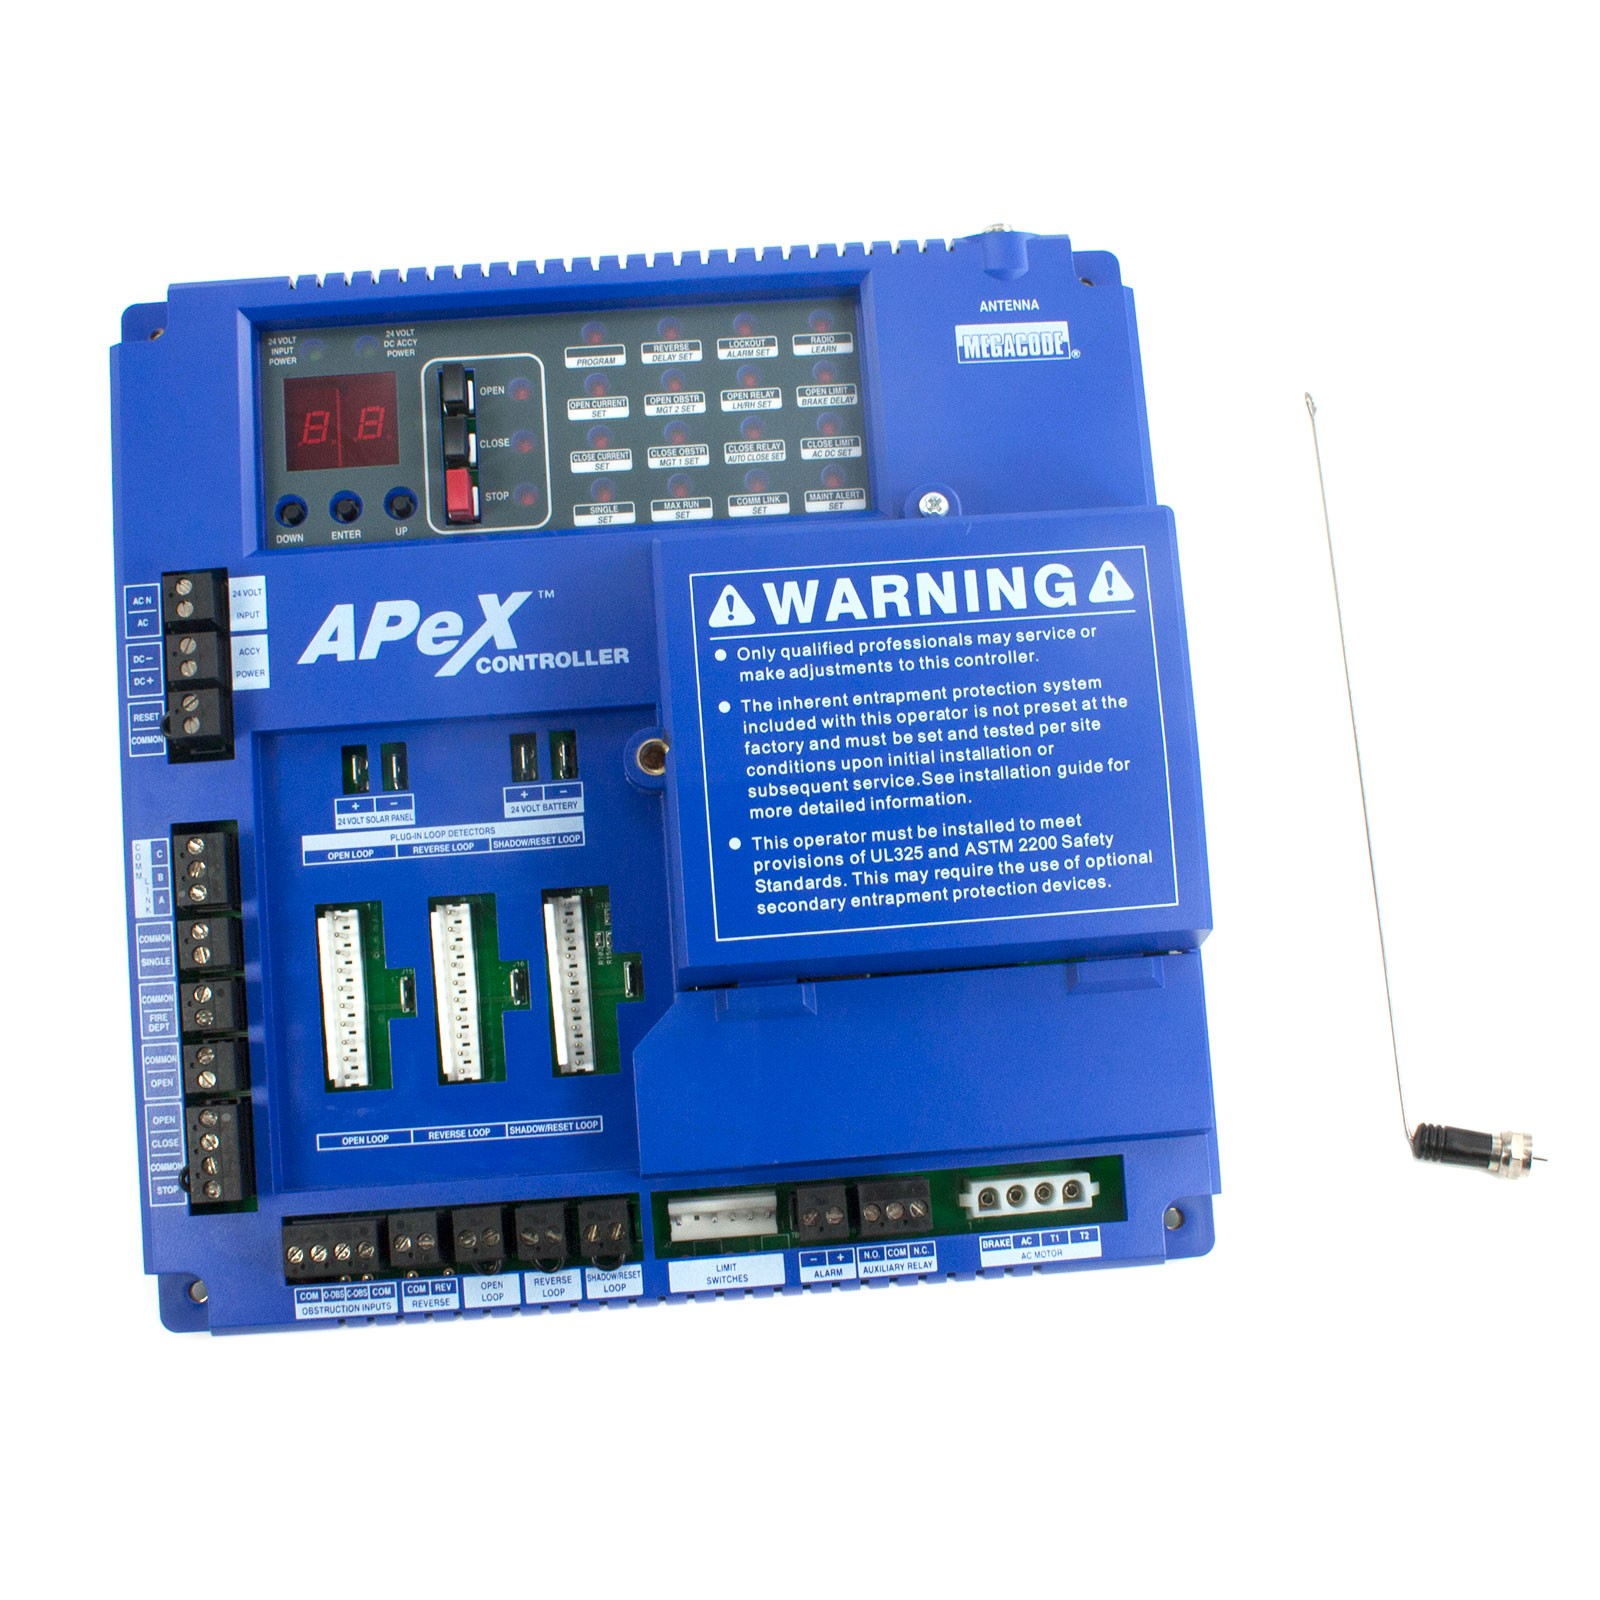 linear osco 2510 439 apex module pwm motor bd assembly linear rh lineargateopeners com linear apex gate controller manual Apex LRA Gate Controller